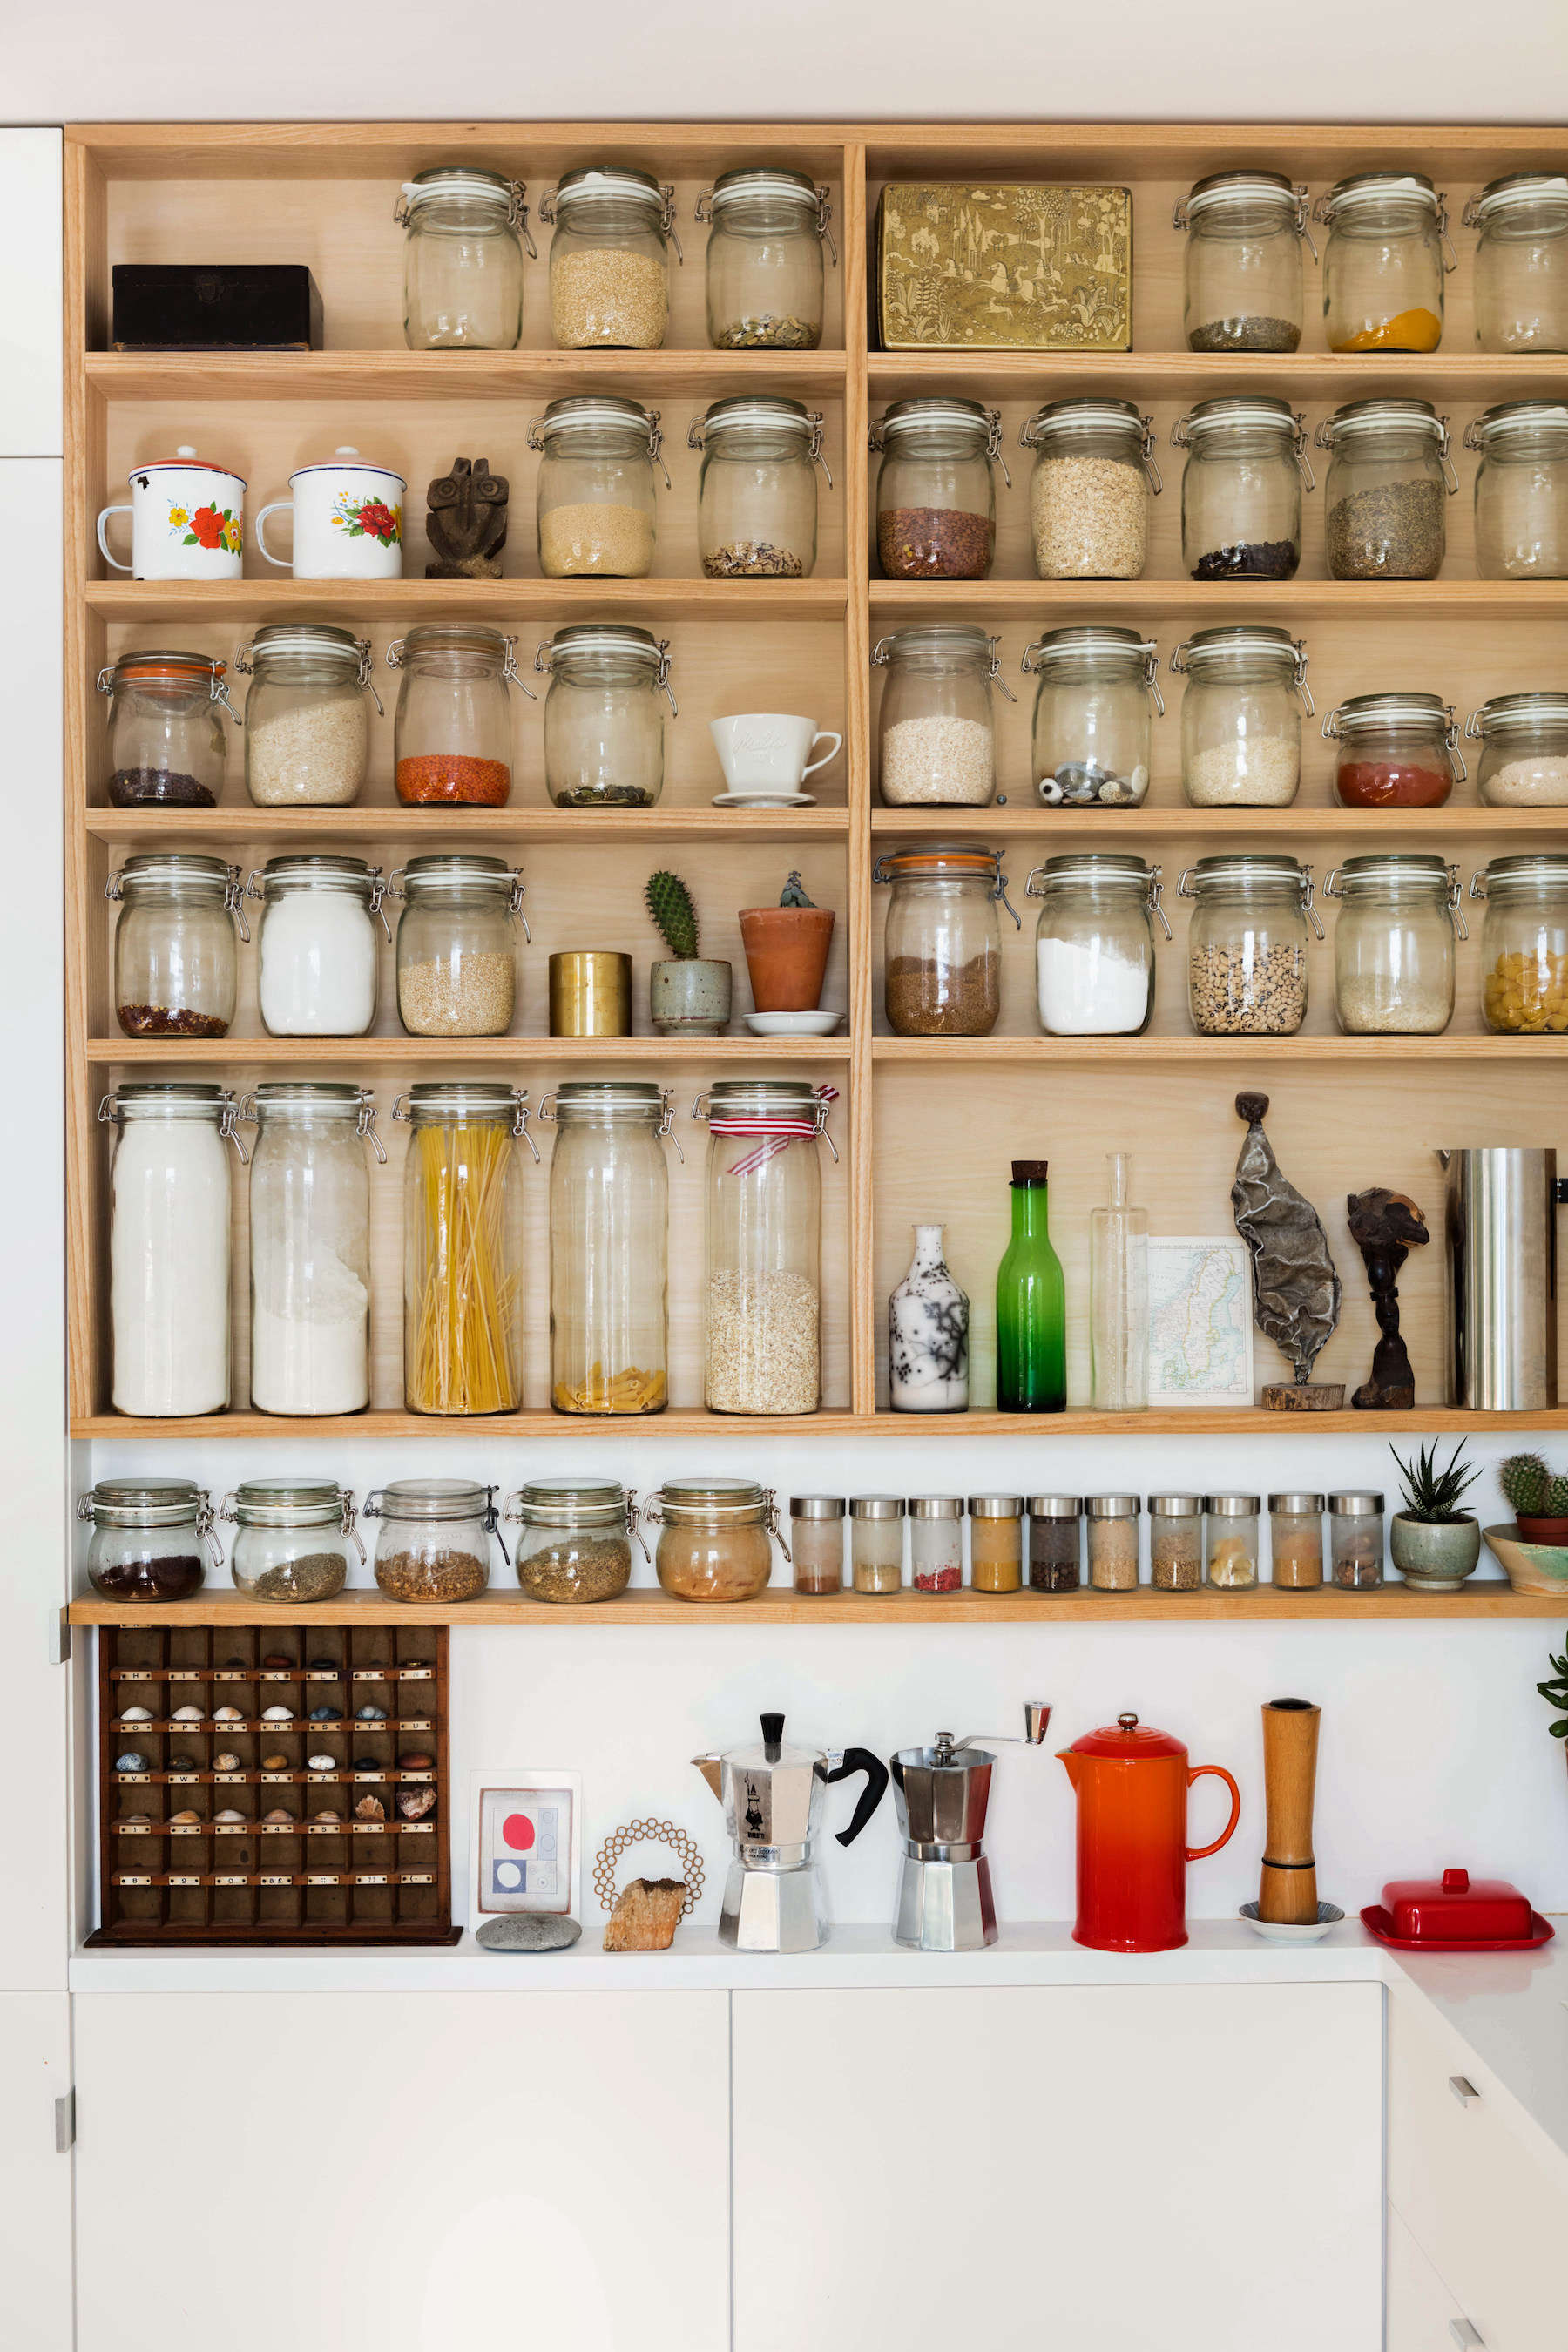 Wood pantry open shelving with decanted jars in a London apartment kitchen